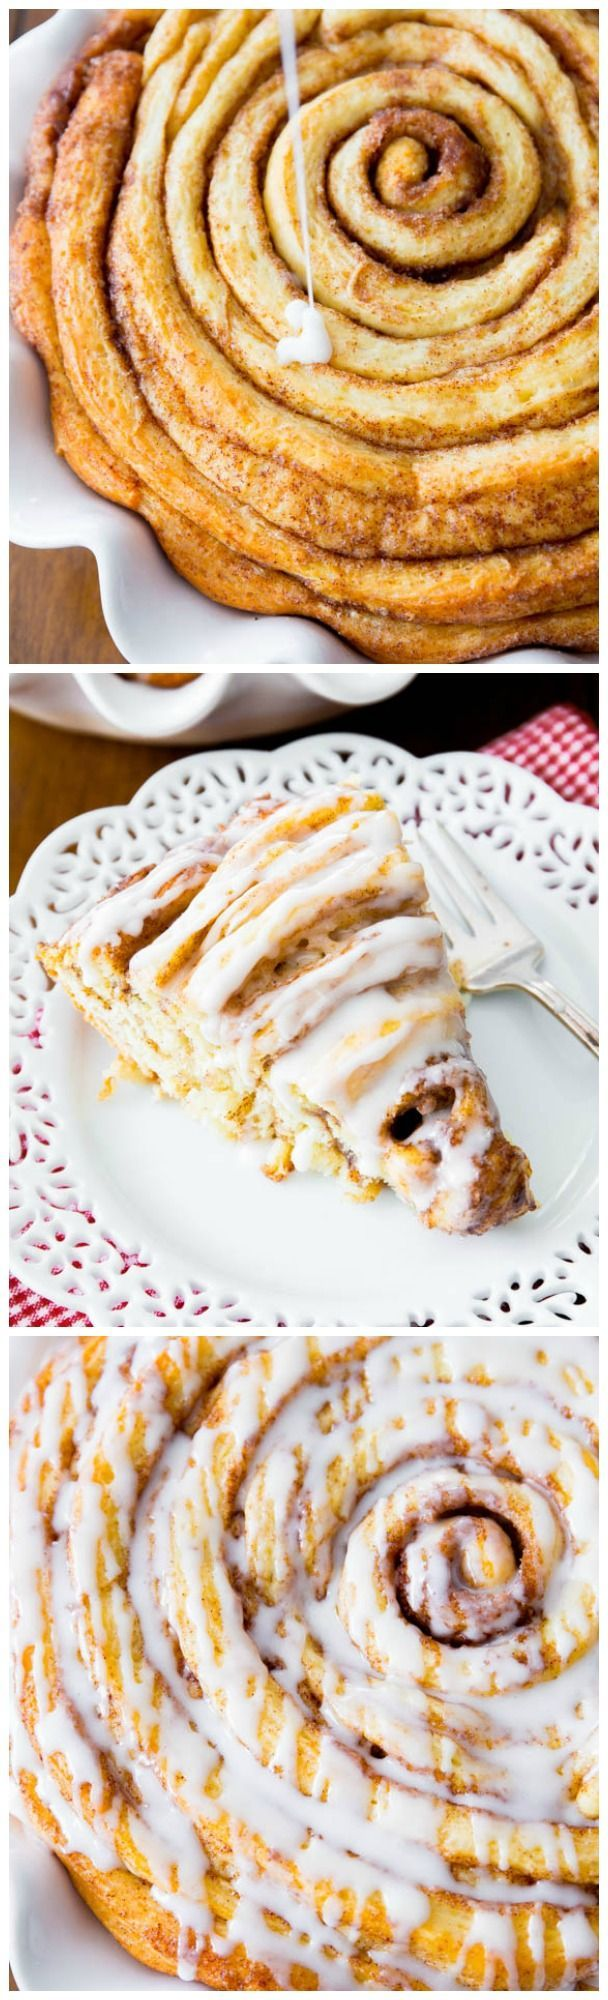 ... Rolls / Muffins on Pinterest | Sticky buns, Cinnamon rolls and Muffins